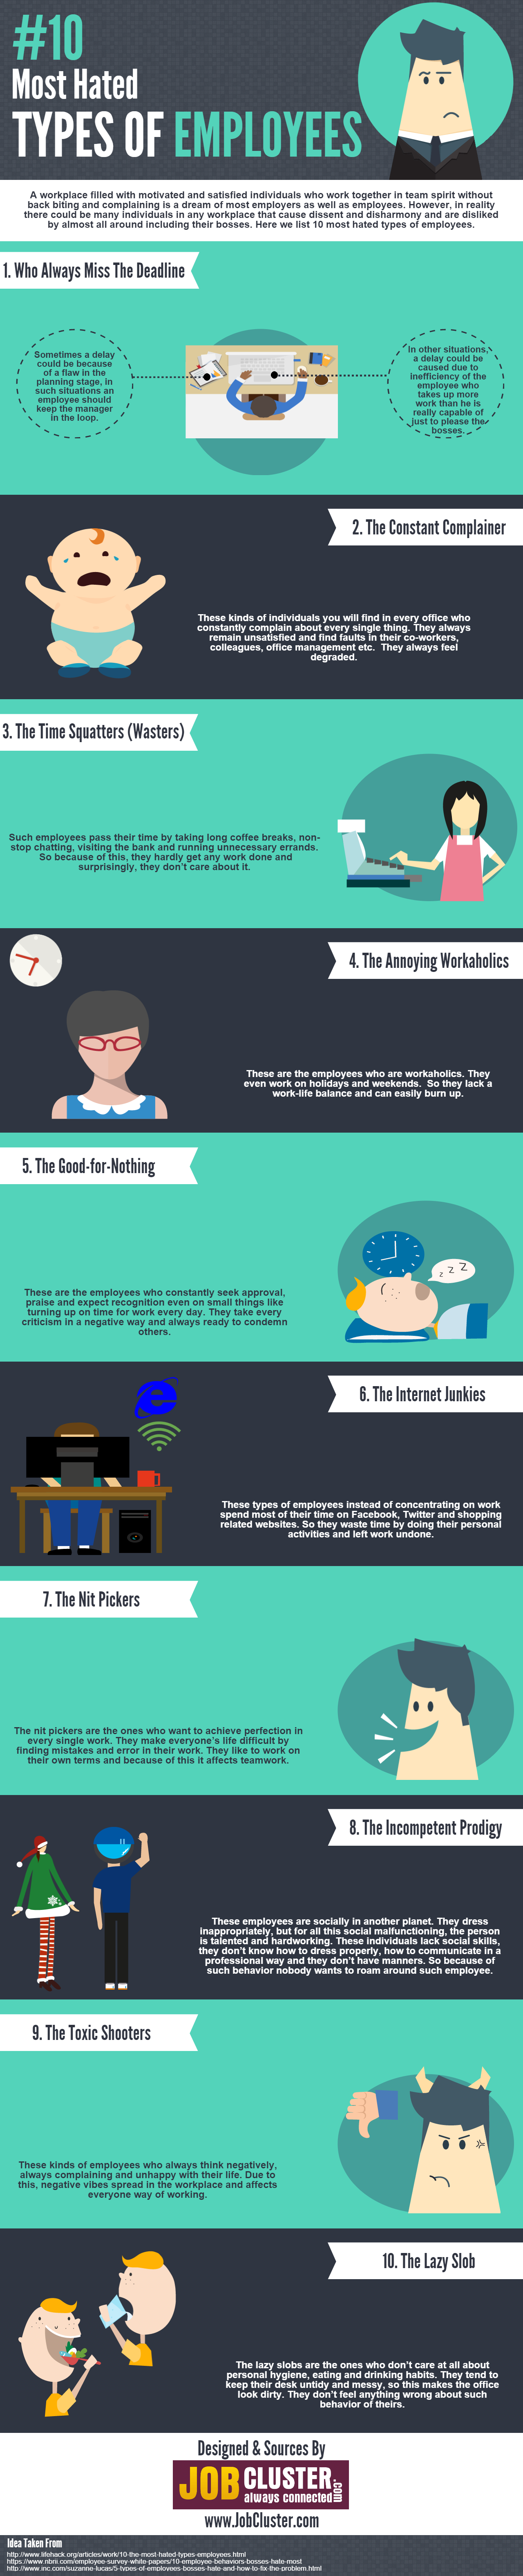 10 most hated employee types- Infographic